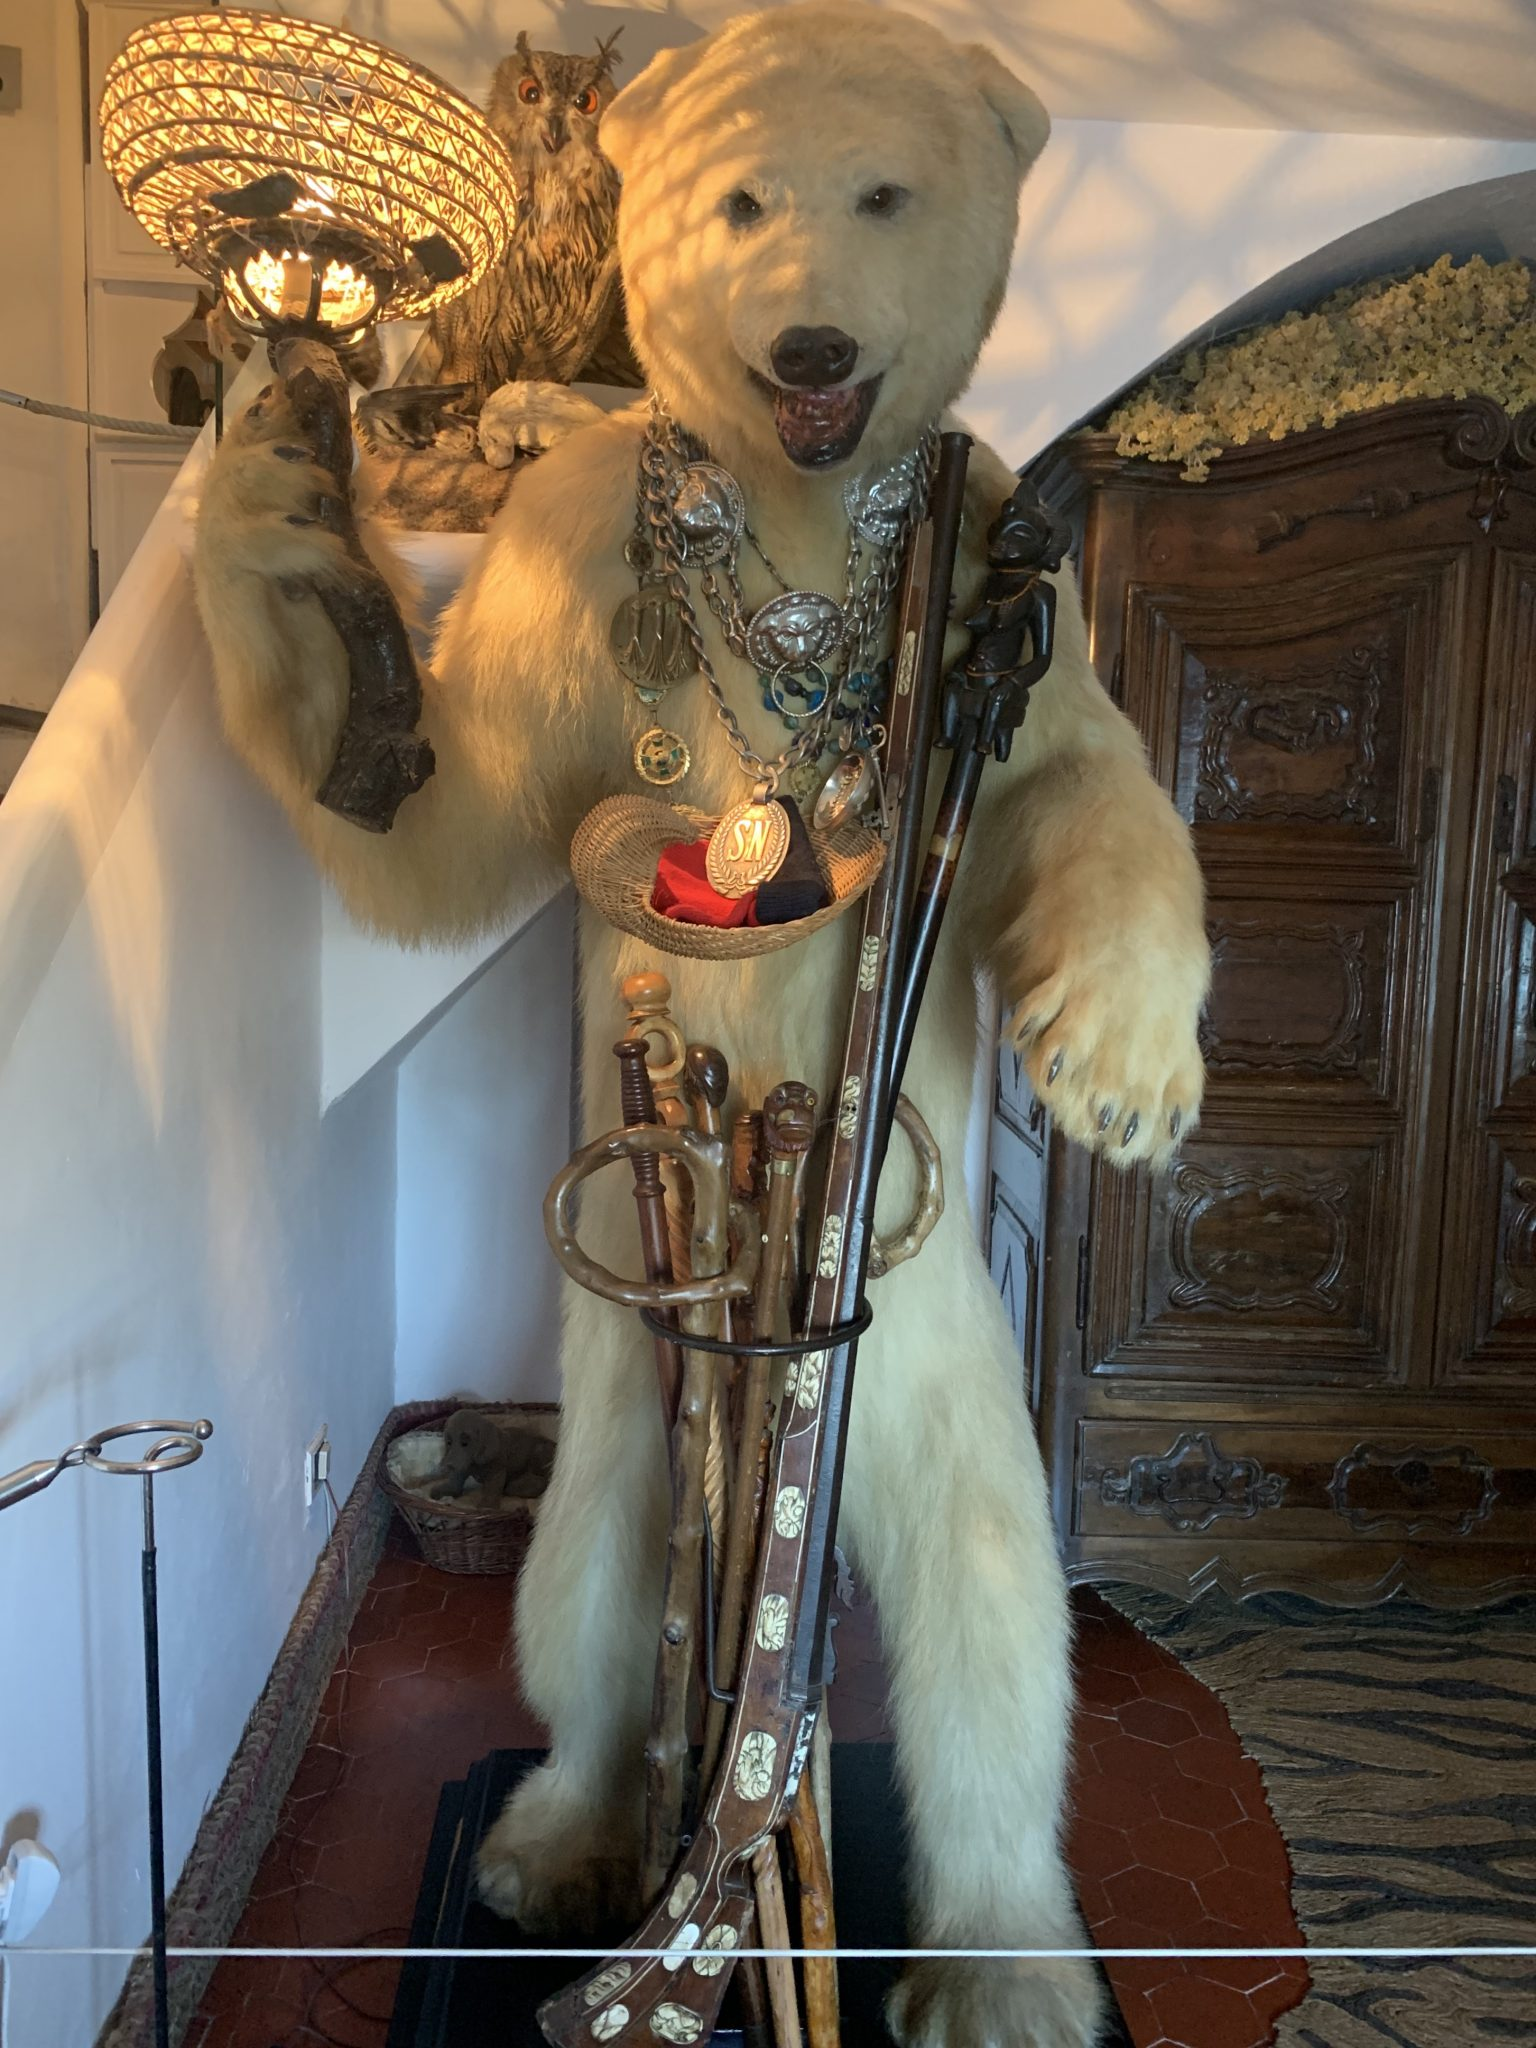 Stuffed polar bear decorated with swords and medals in the entryway to Dali's house.